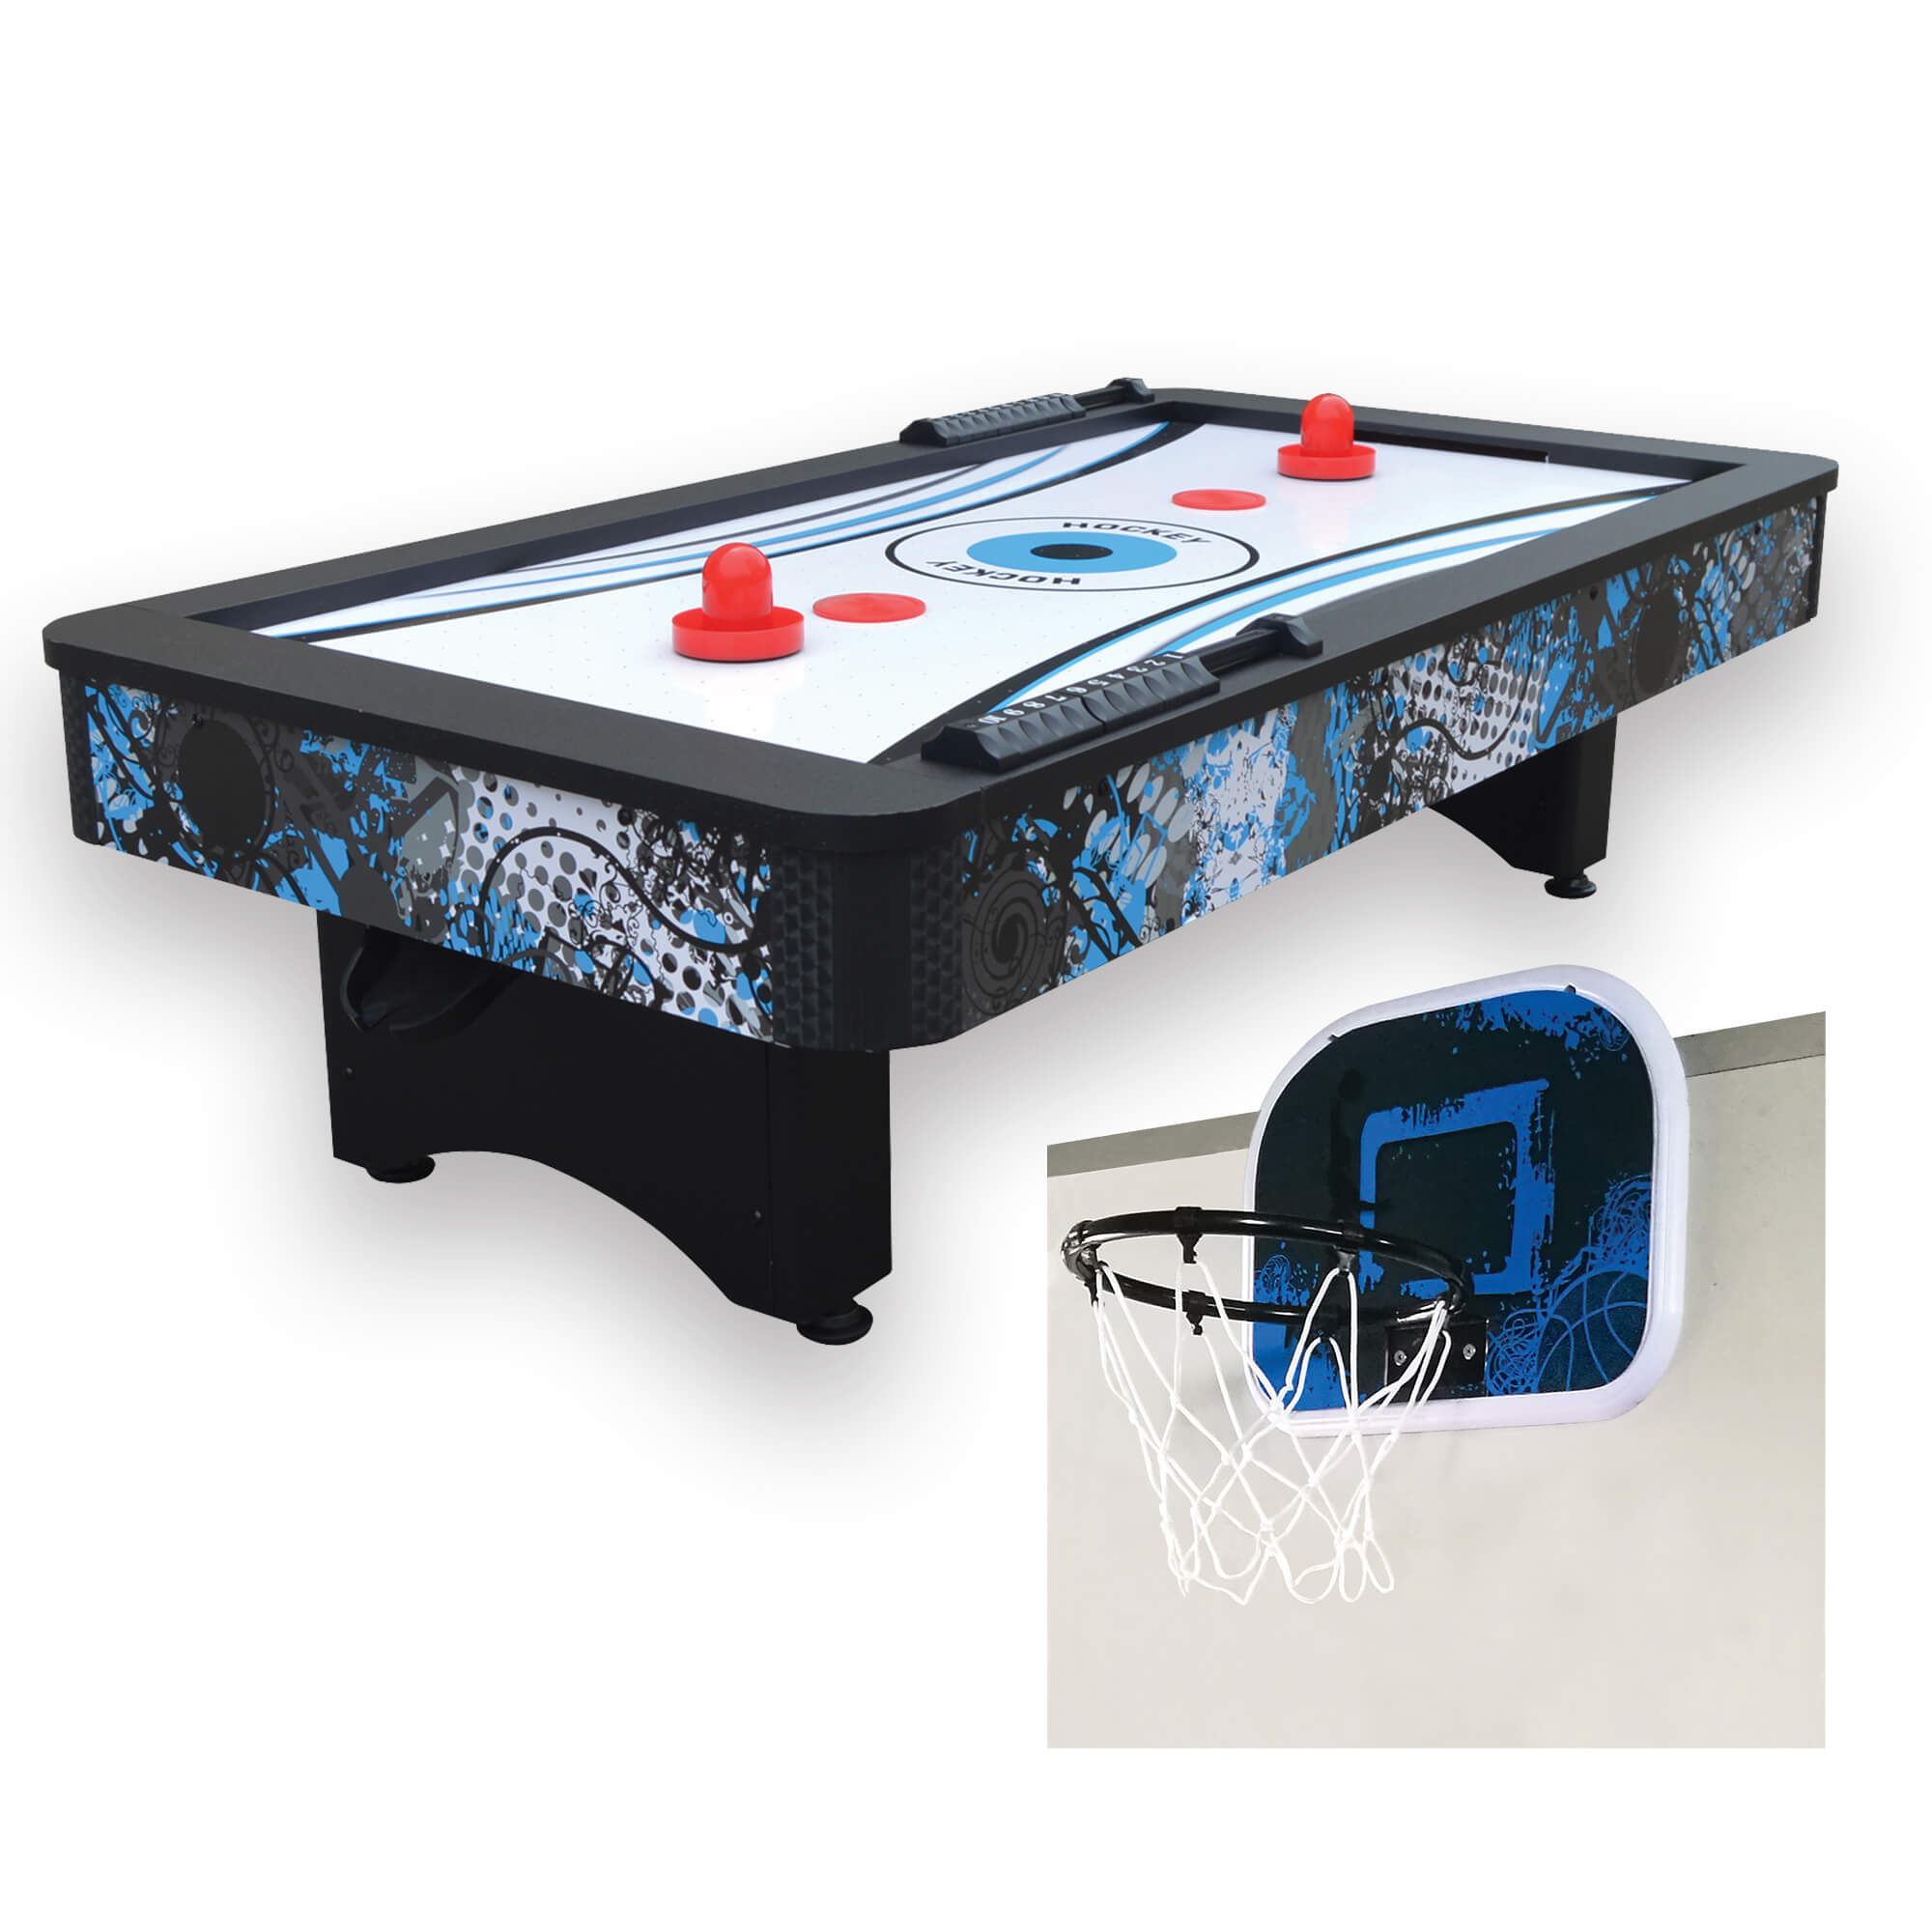 "Hathaway Crossfire 42"" Tabletop Air Hockey Table with Mini Basketball Game - Gaming Blaze"